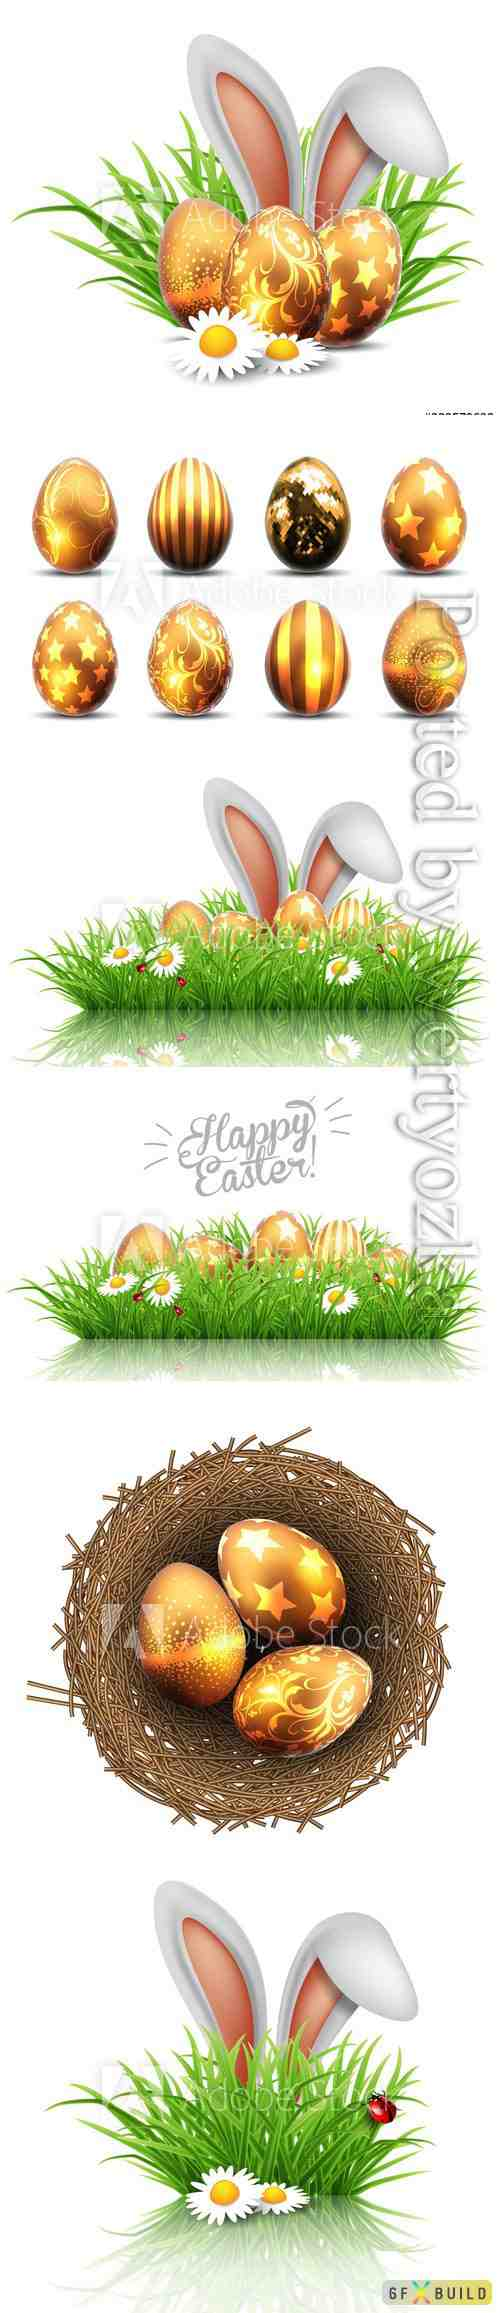 Happy Easter greeting card, rabbit ears peeping out of grass with daisies